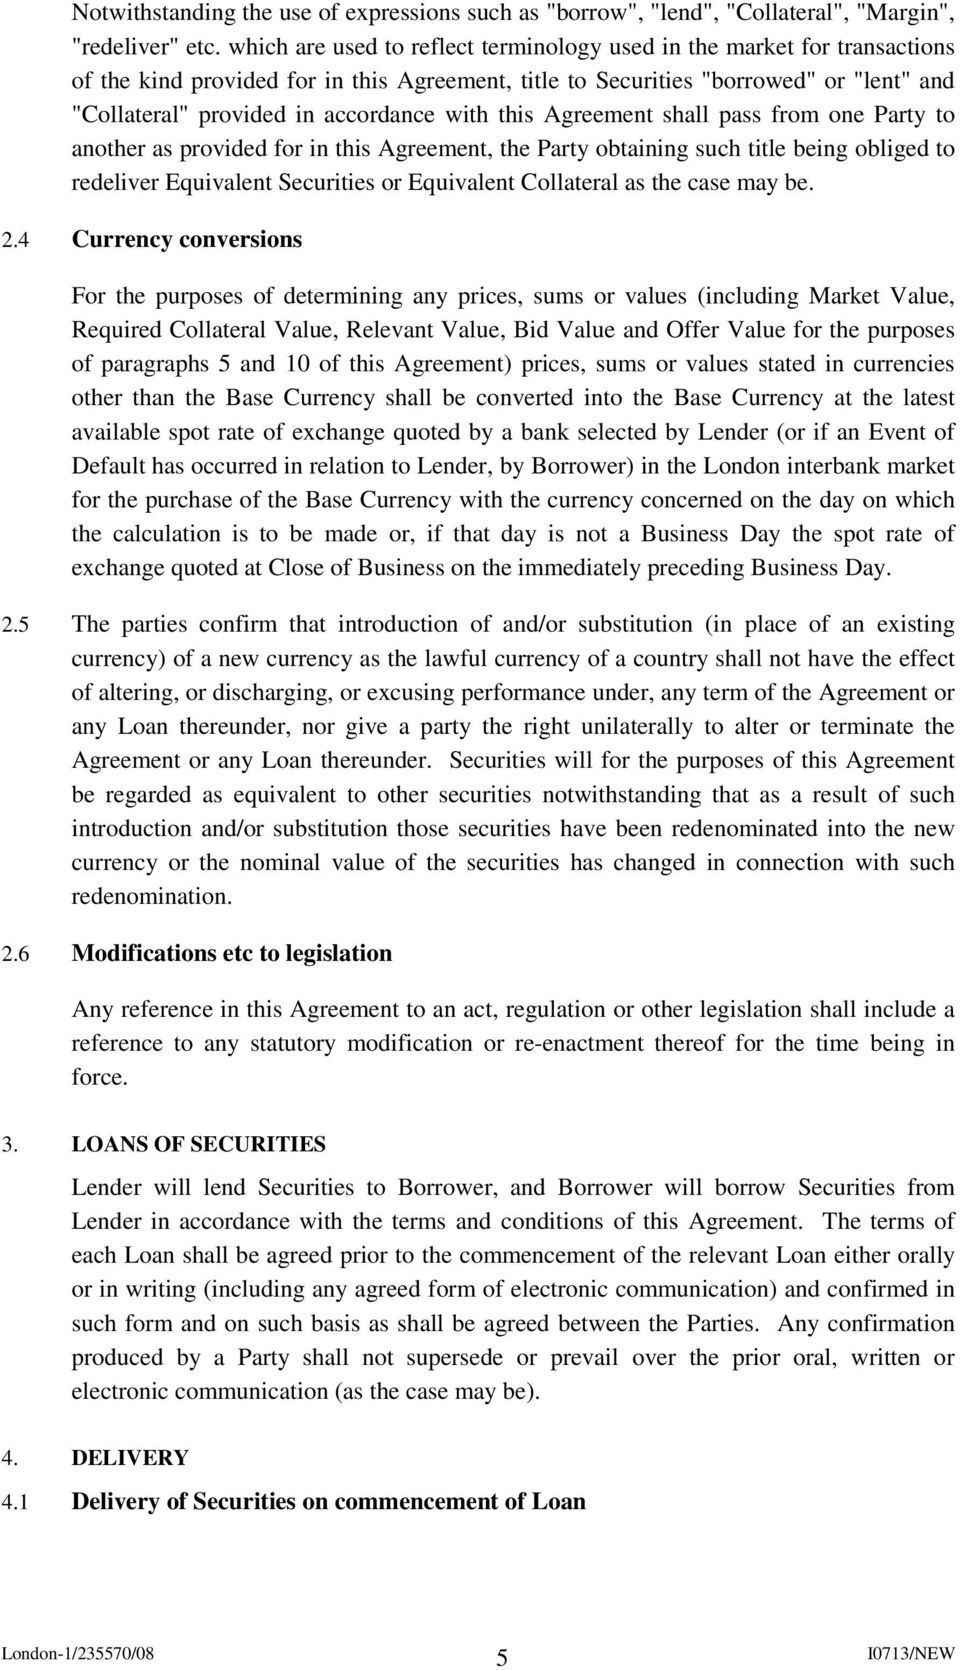 with this Agreement shall pass from one Party to another as provided for in this Agreement, the Party obtaining such title being obliged to redeliver Equivalent Securities or Equivalent Collateral as